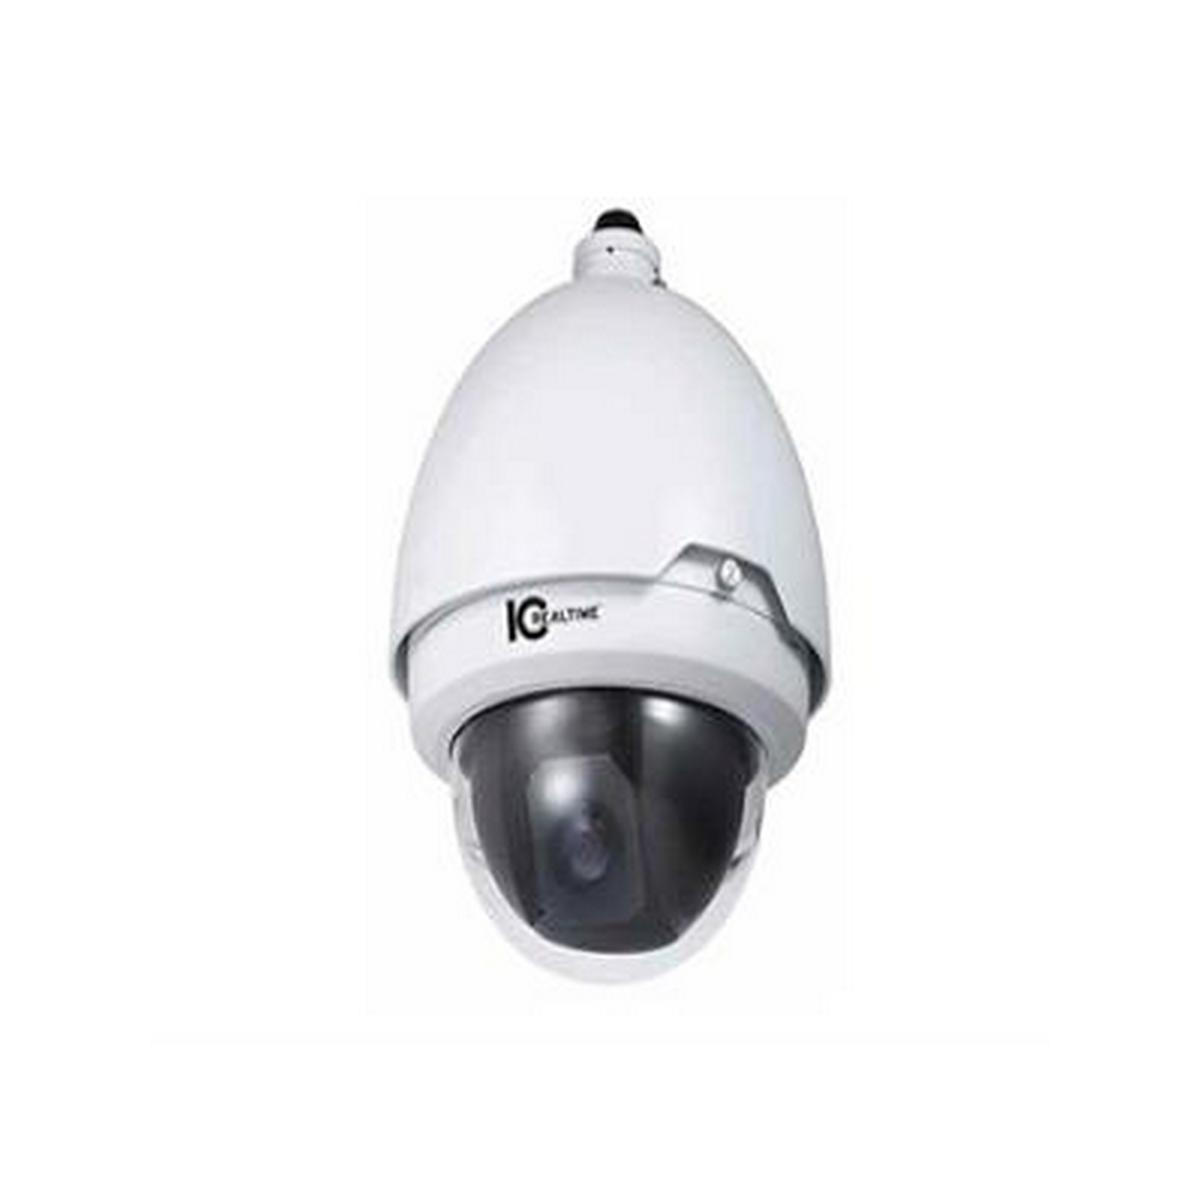 INDOOR/OUTDOOR IP PTZ, 2.0 MEGAPIXEL, 20X OPTICAL AUTO FOCUS ZOOM, WITH H.264E COMPRESSION, 24VAC - POWER SUPPLY AND WALL MOUNT INCLUDED